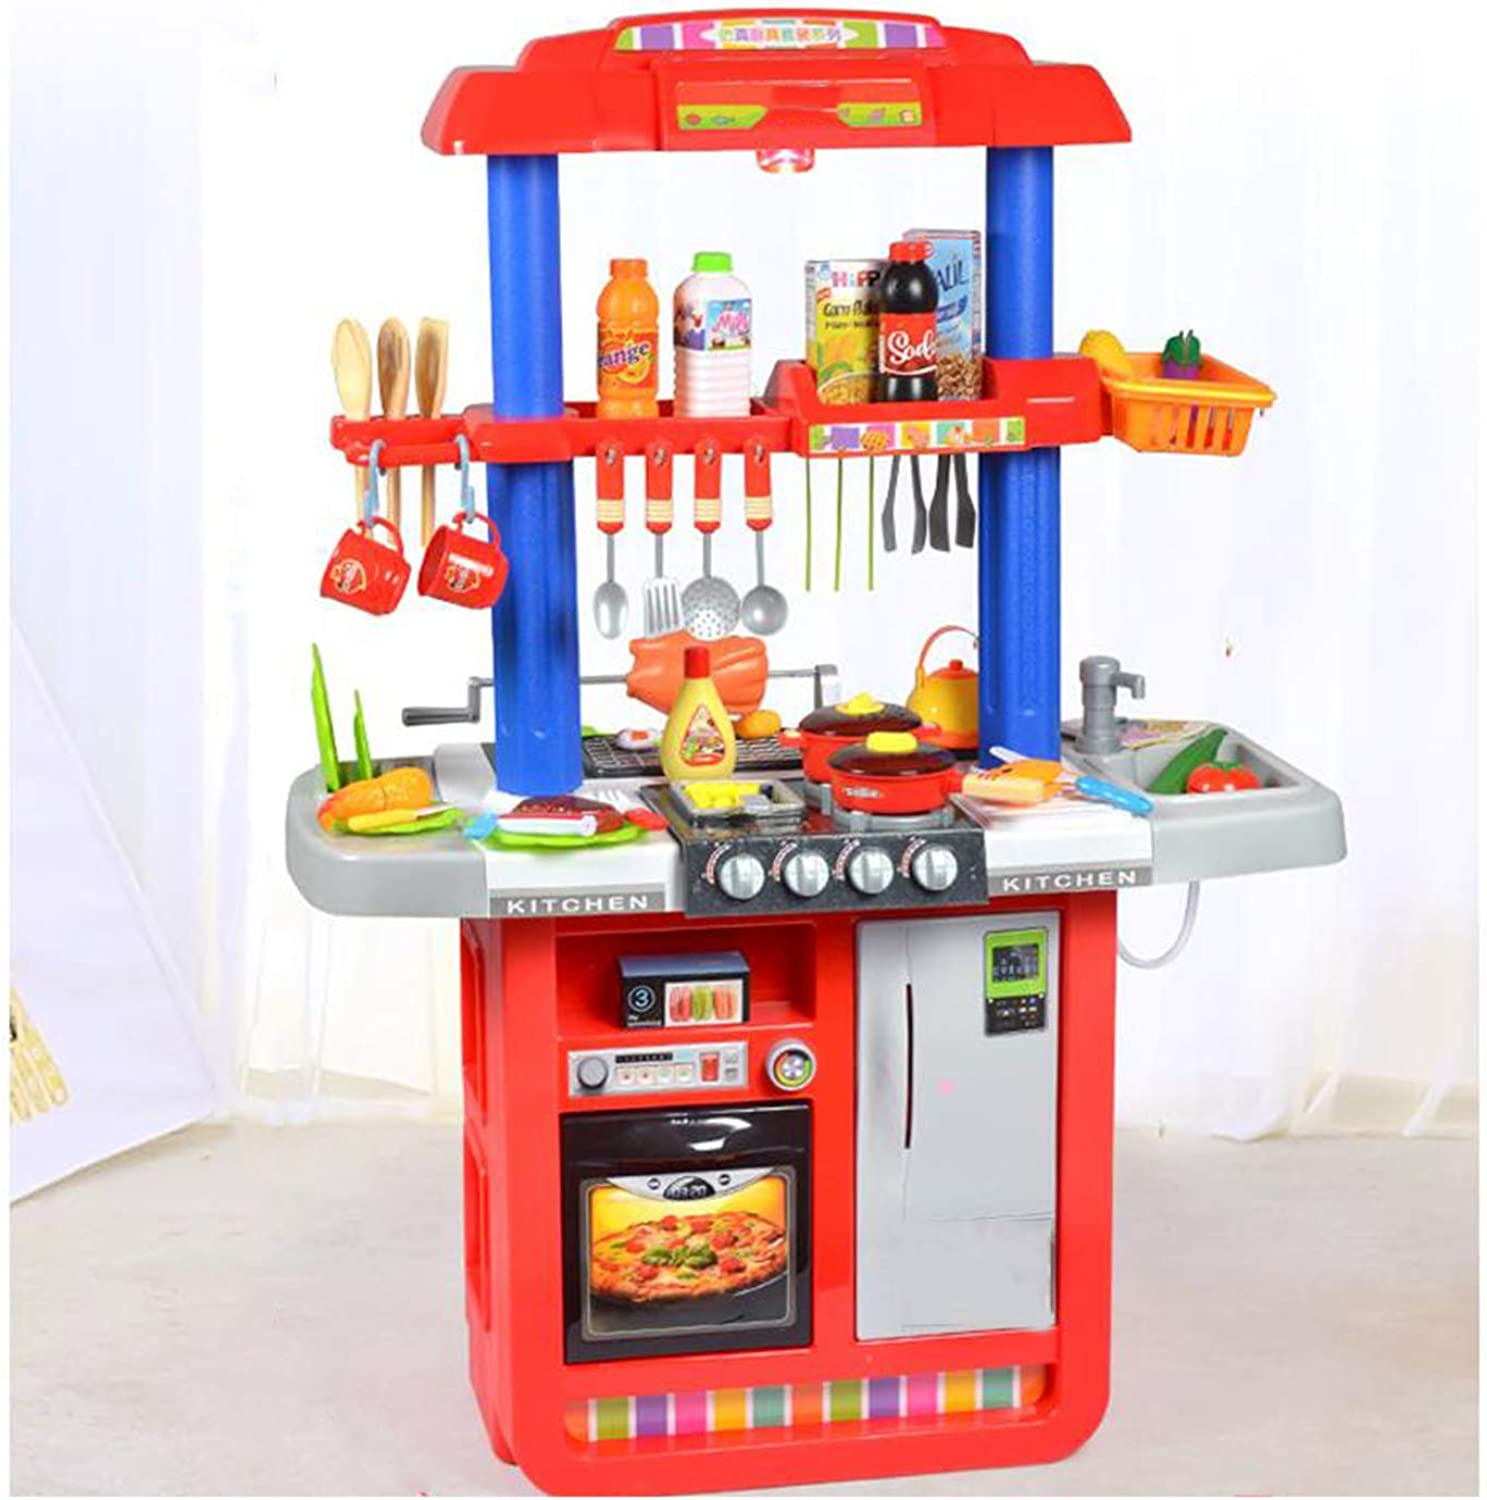 XCXDX Luxury Double-sided Kitchen Toys, Barbecue Stalls Toys With Sound Lighting, Bright colors, Creative Gifts